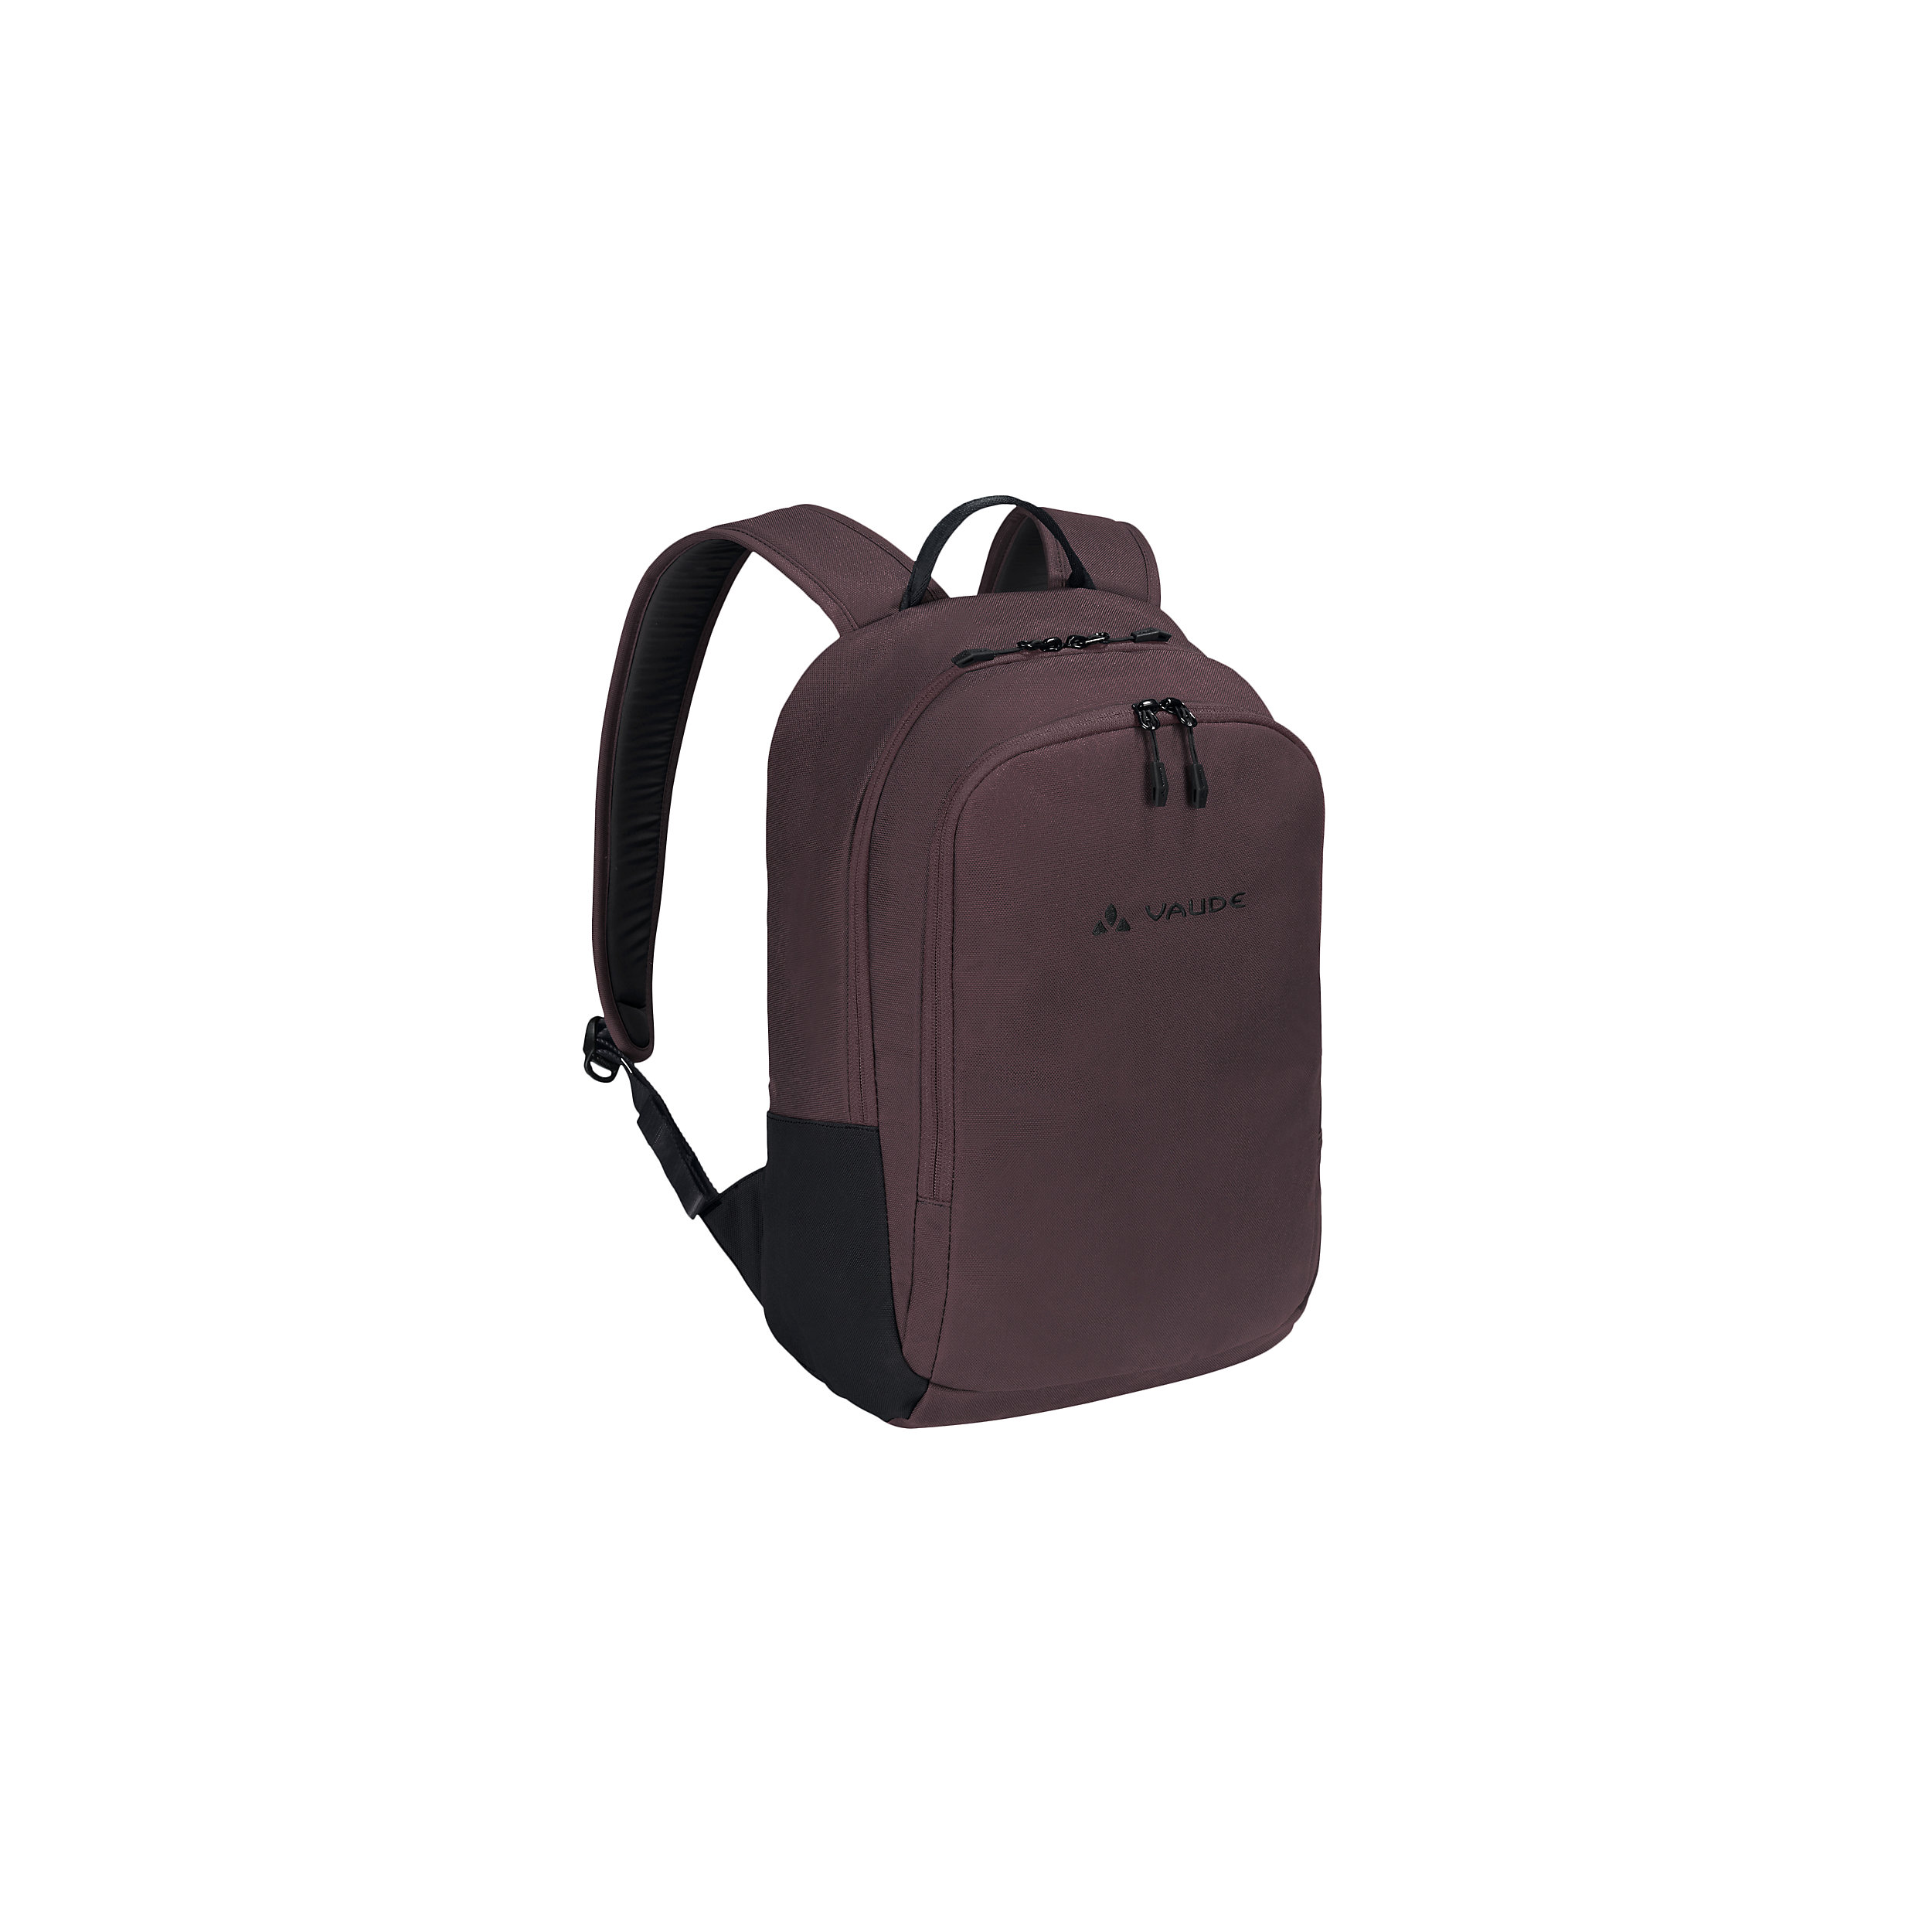 Backpack PETali waxed 13.3 Inch Recycled Small 15 Liter